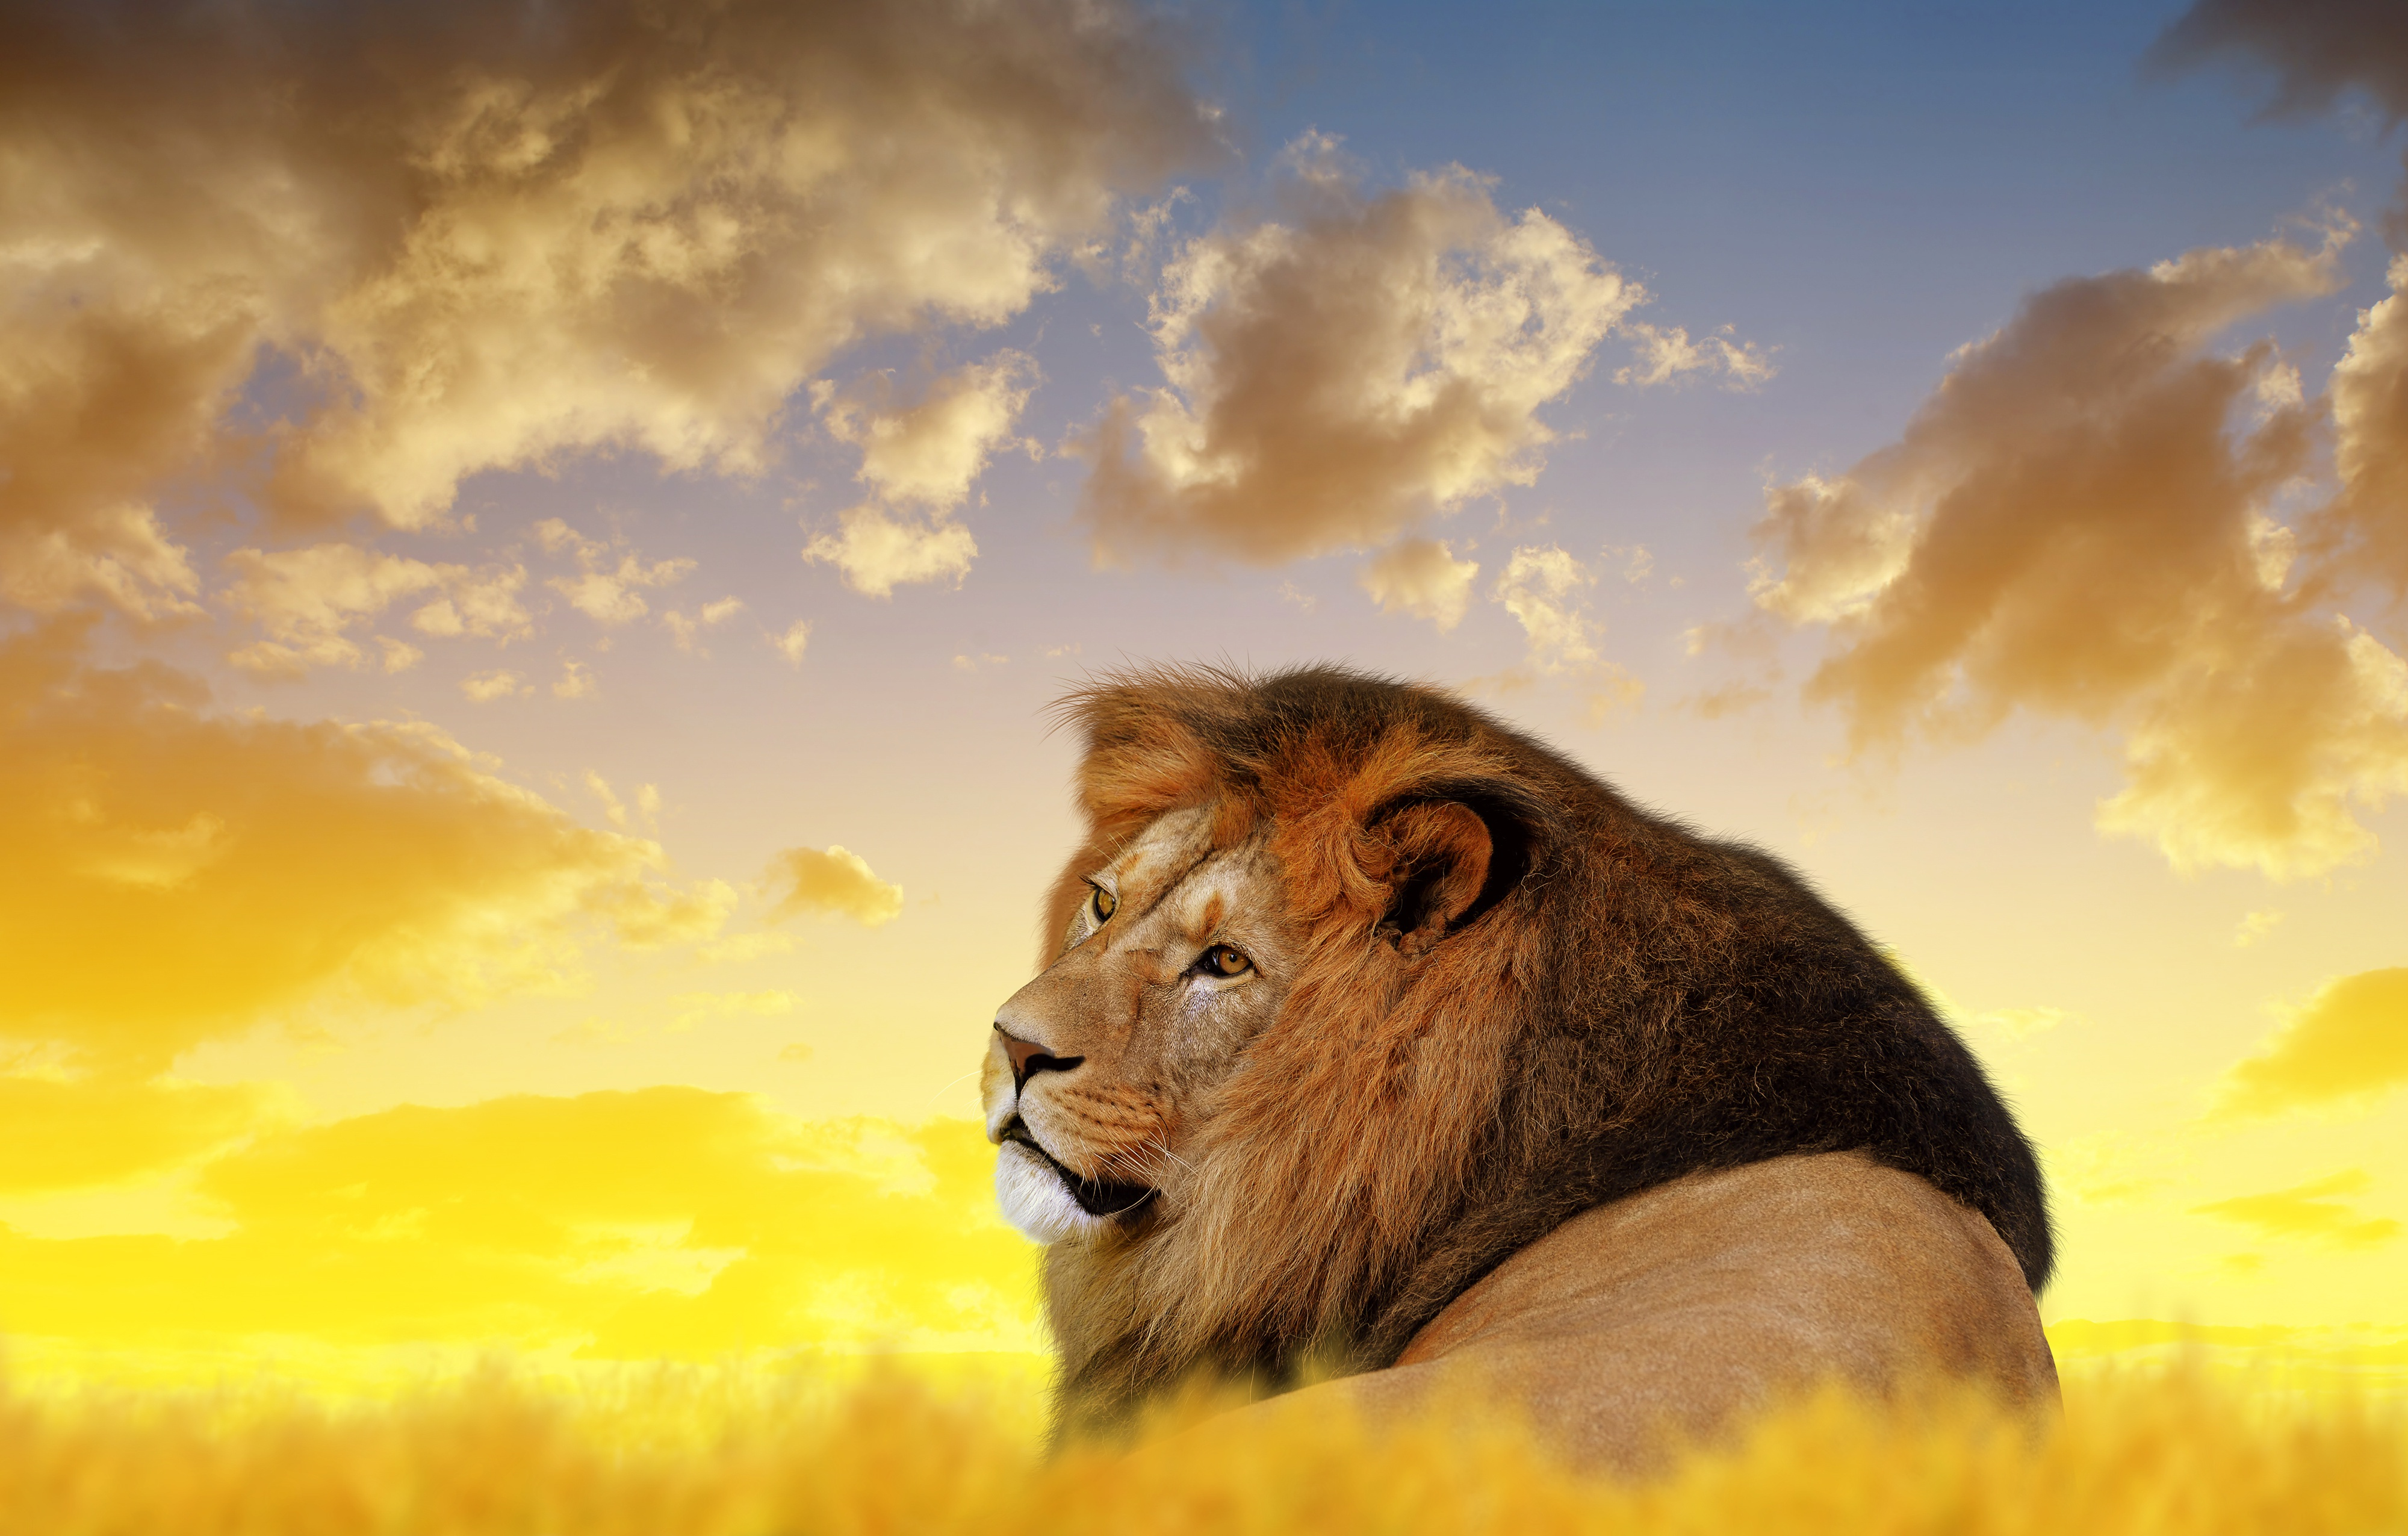 Lion Ultra Hd 4k Hd Animals 4k Wallpapers Images